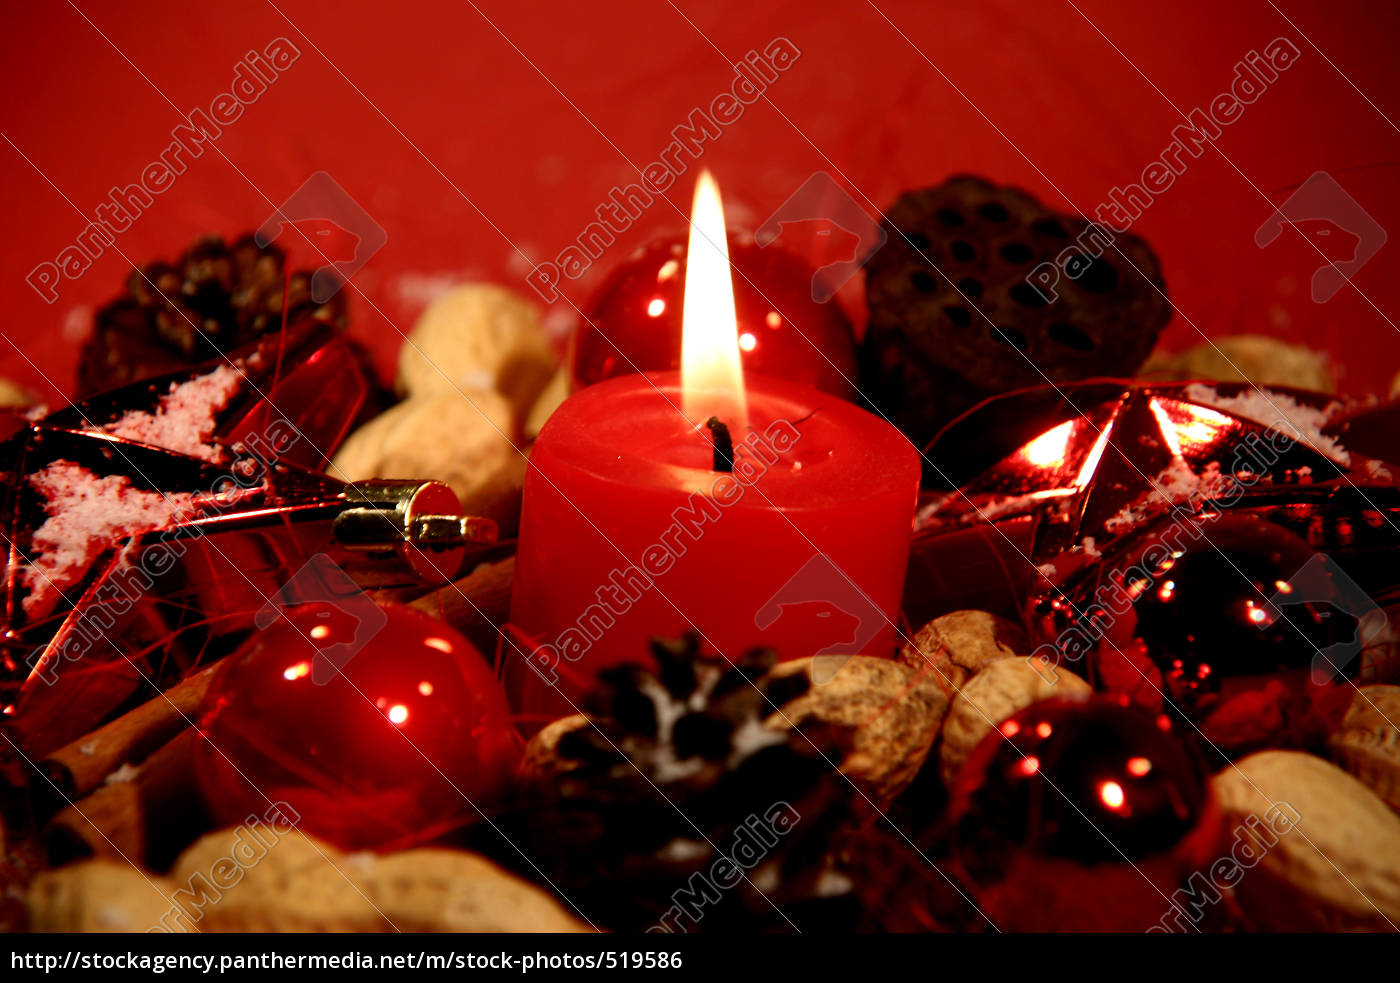 red, candle - 519586